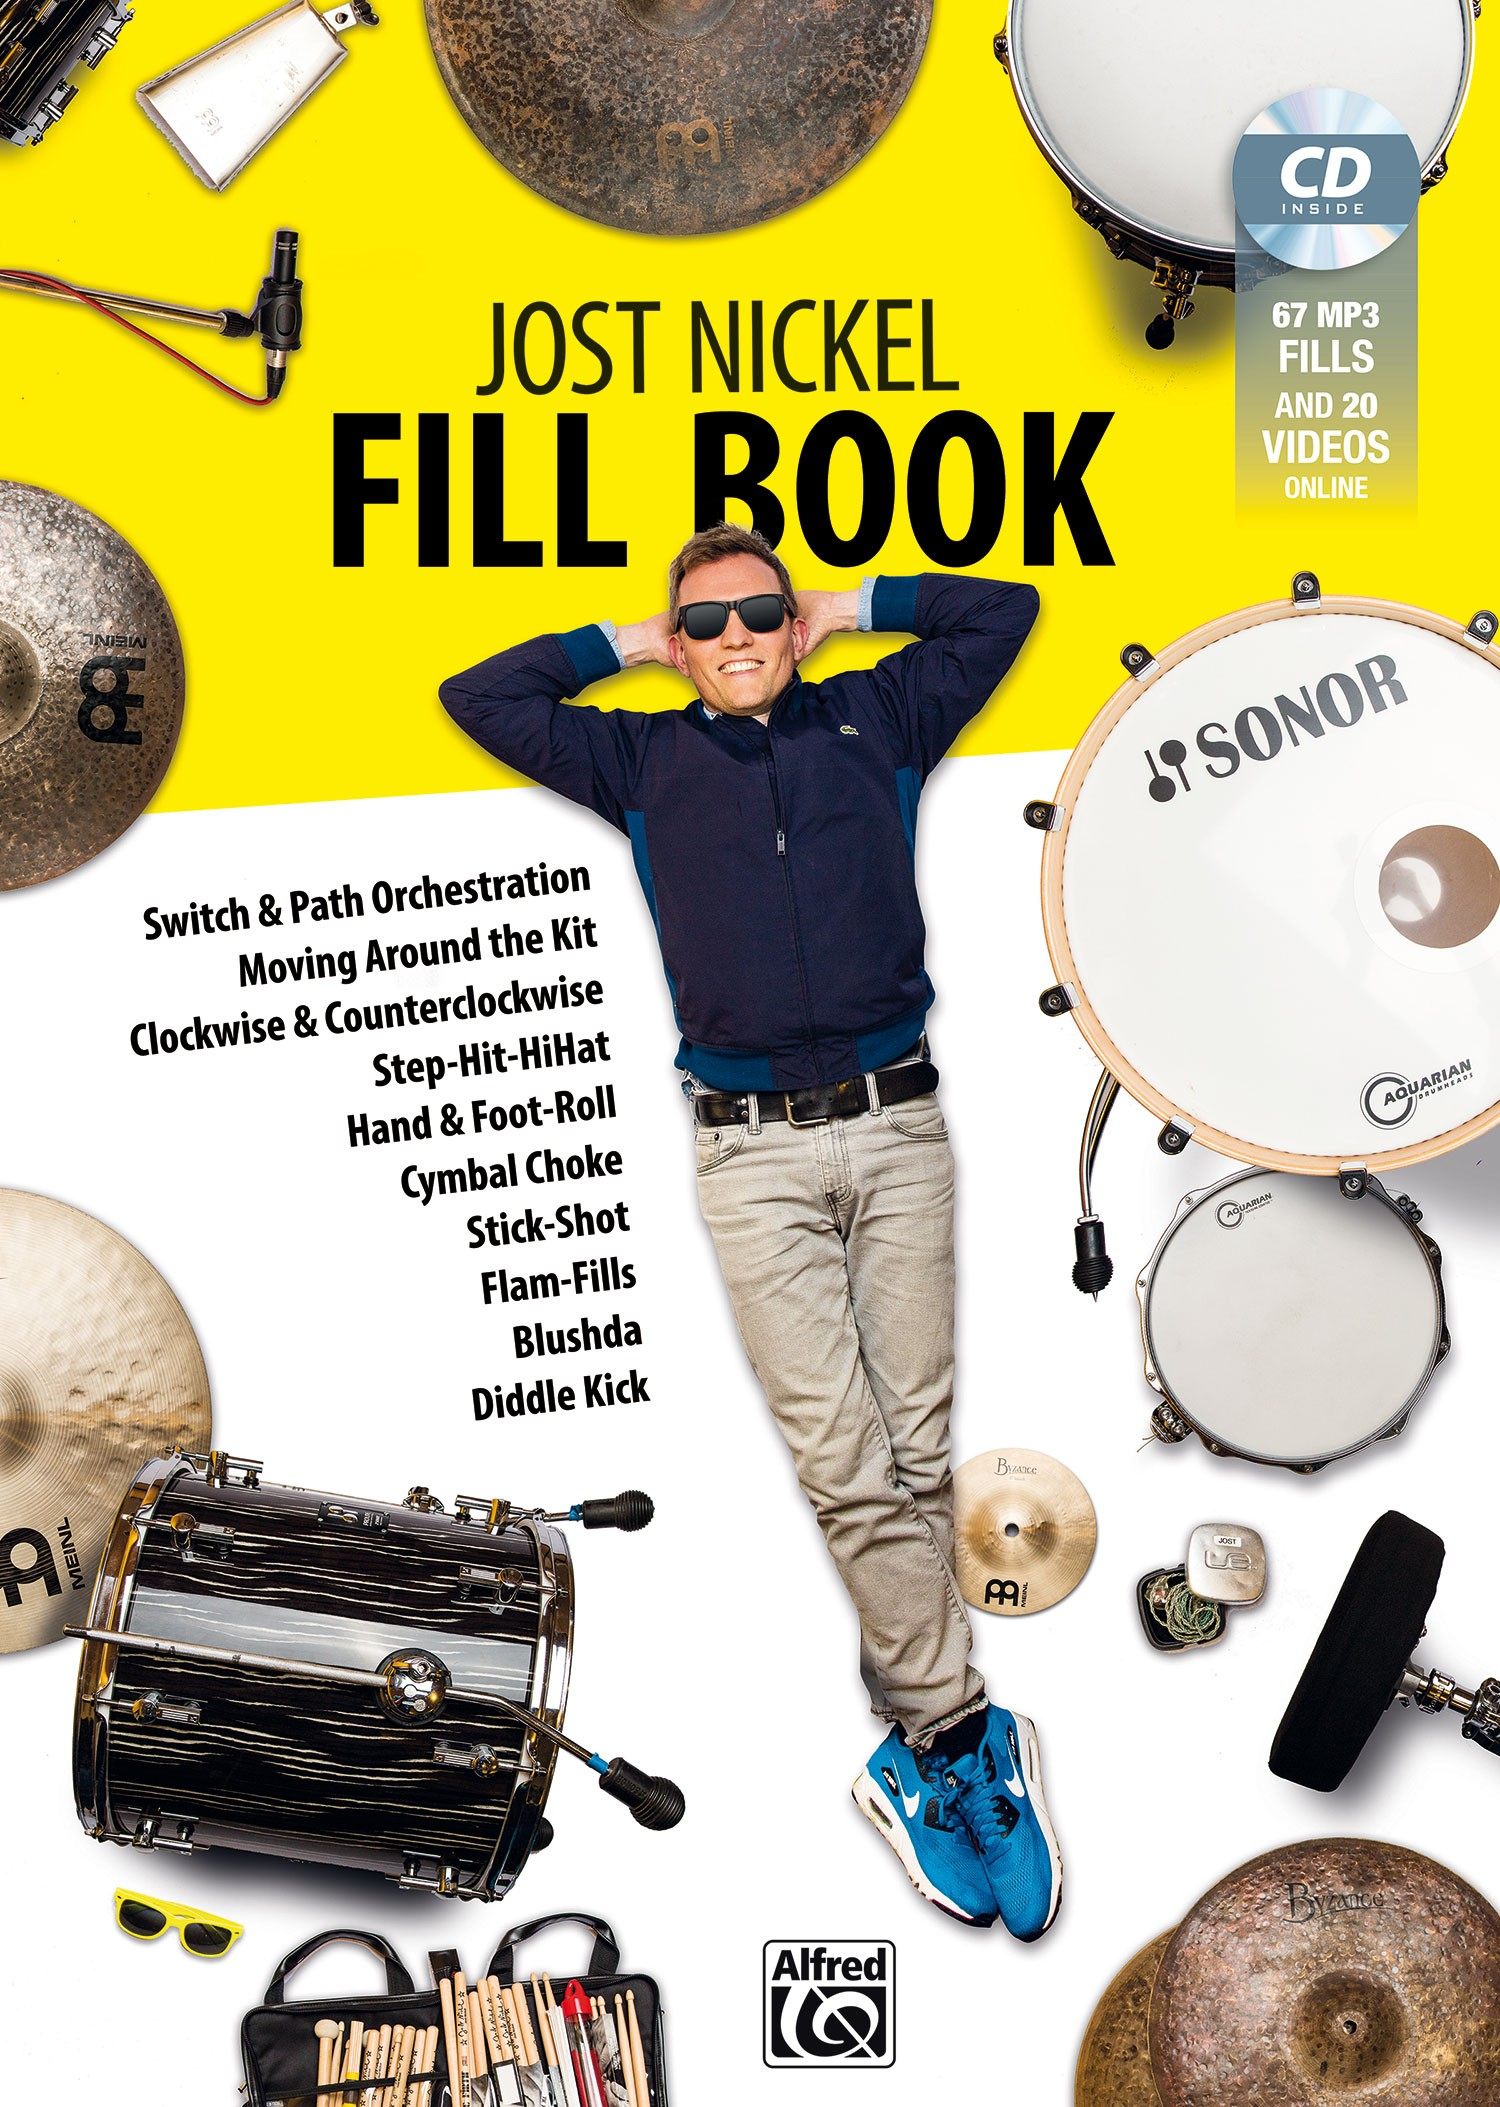 Jost Nickel Fill Book